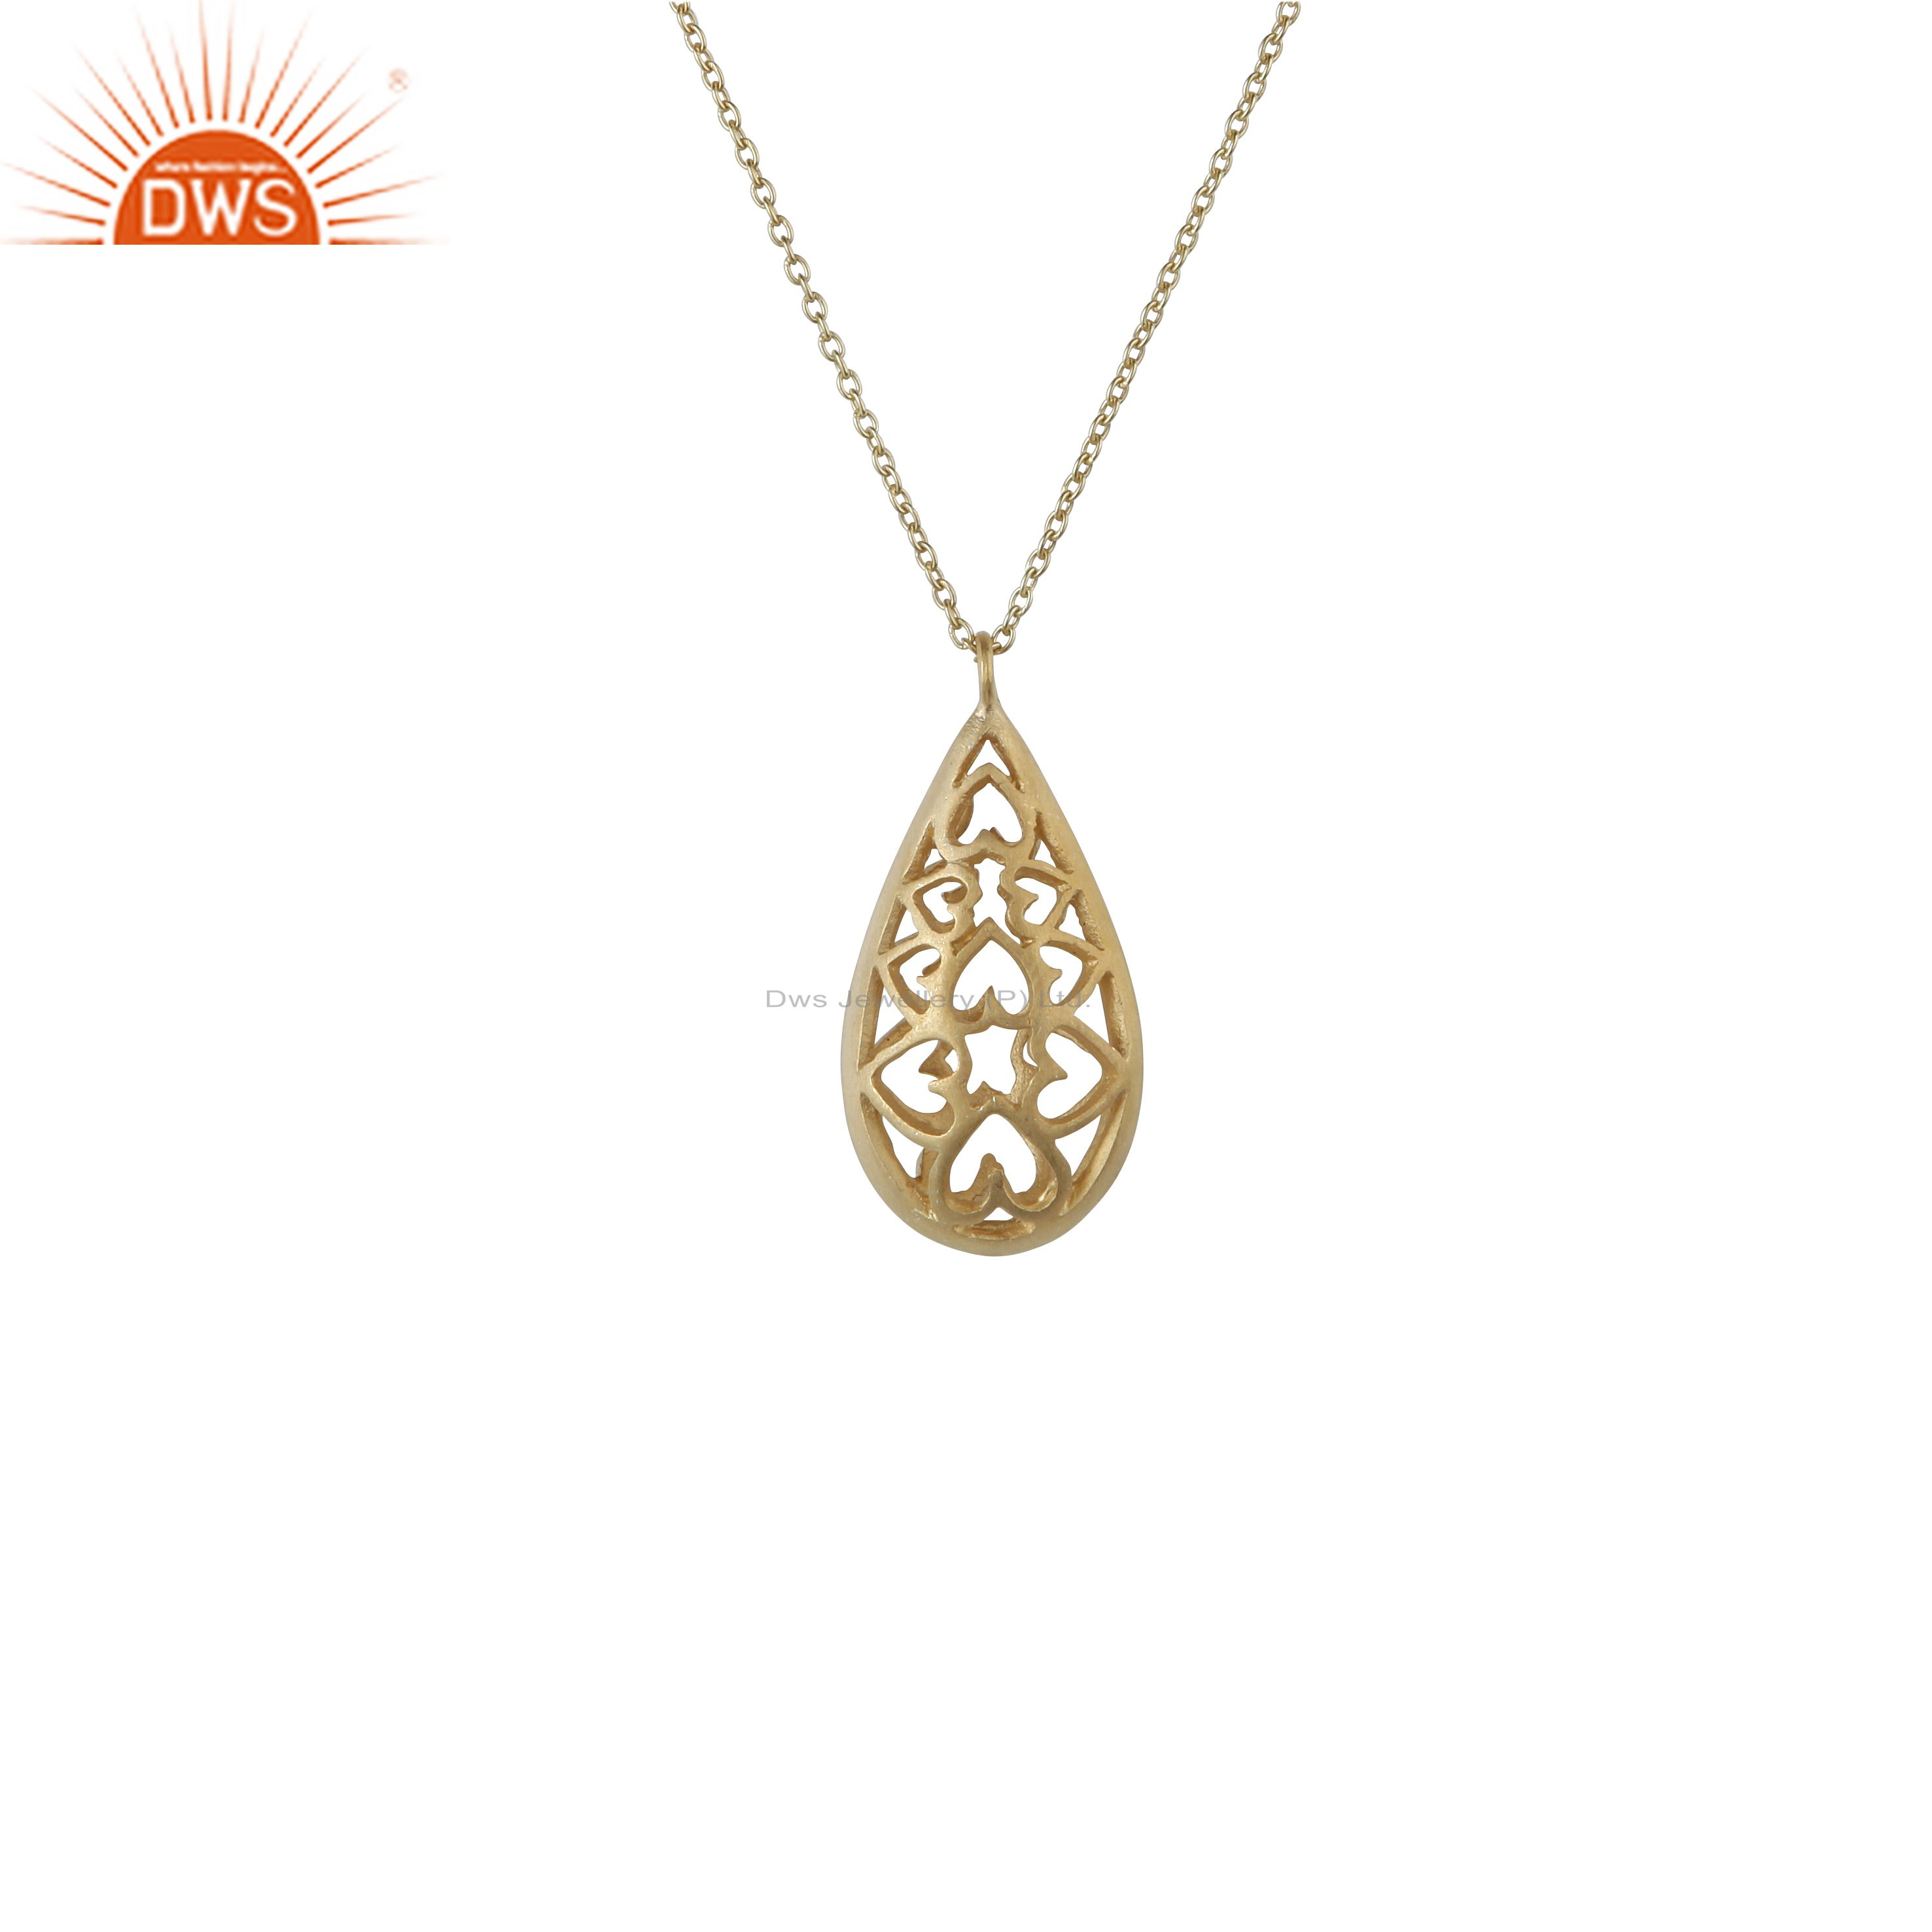 14k yellow gold plated sterling silver heart designer drop pendant with chain